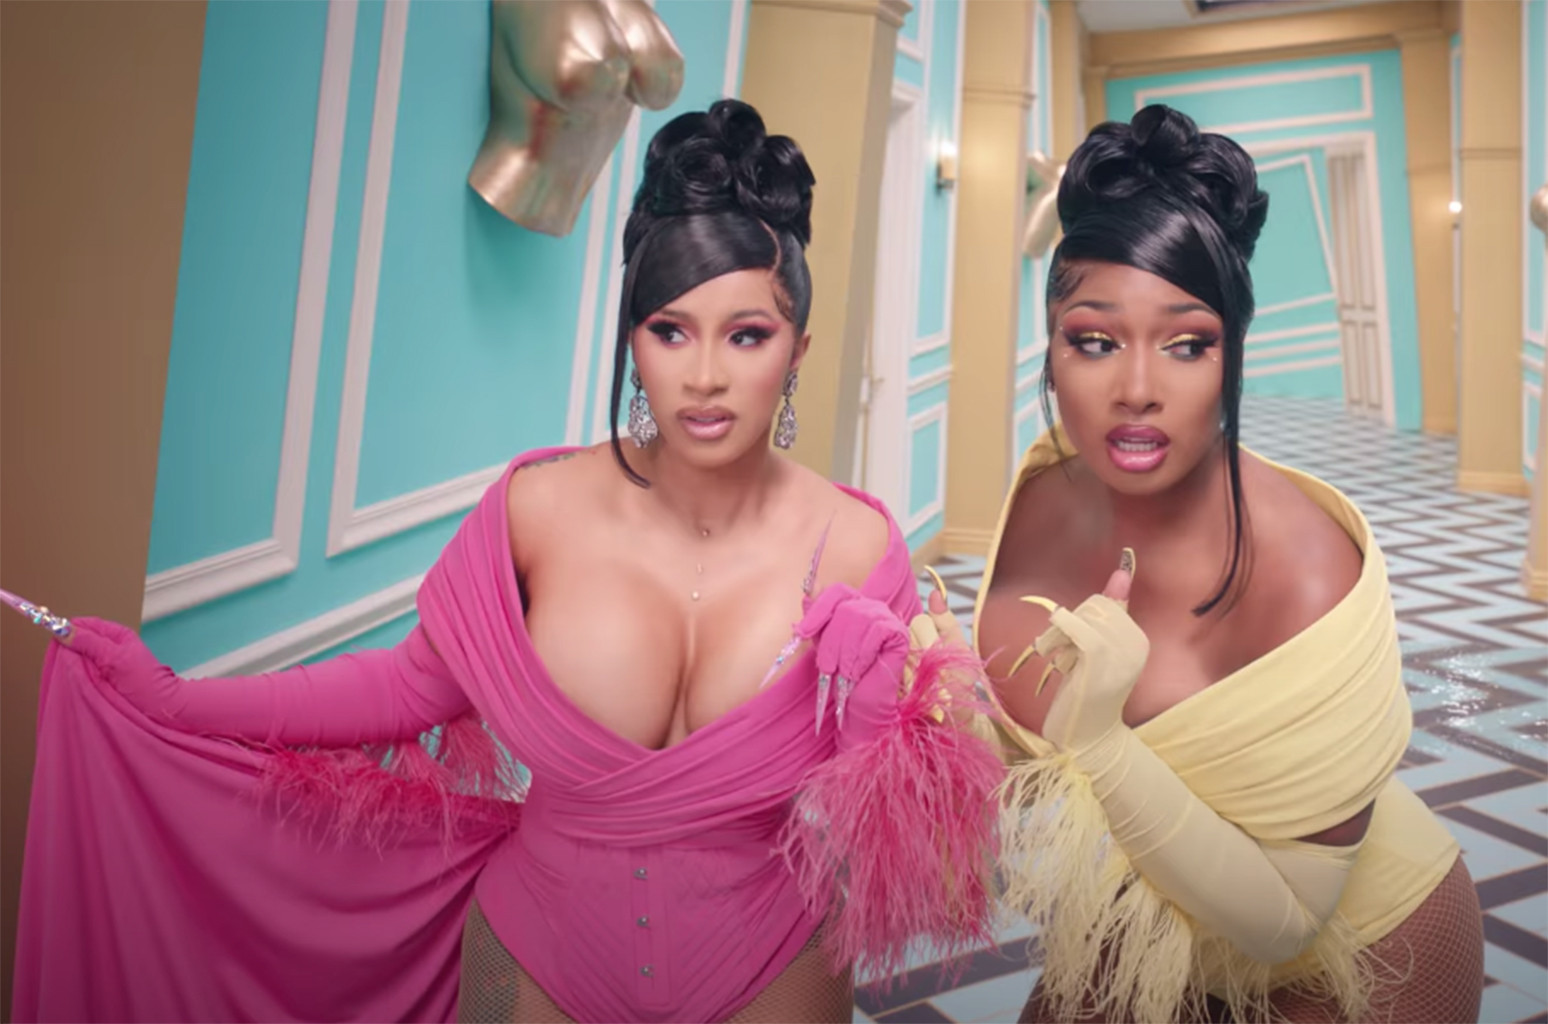 Here's How Much Cardi B's Music Videos Cost to Make